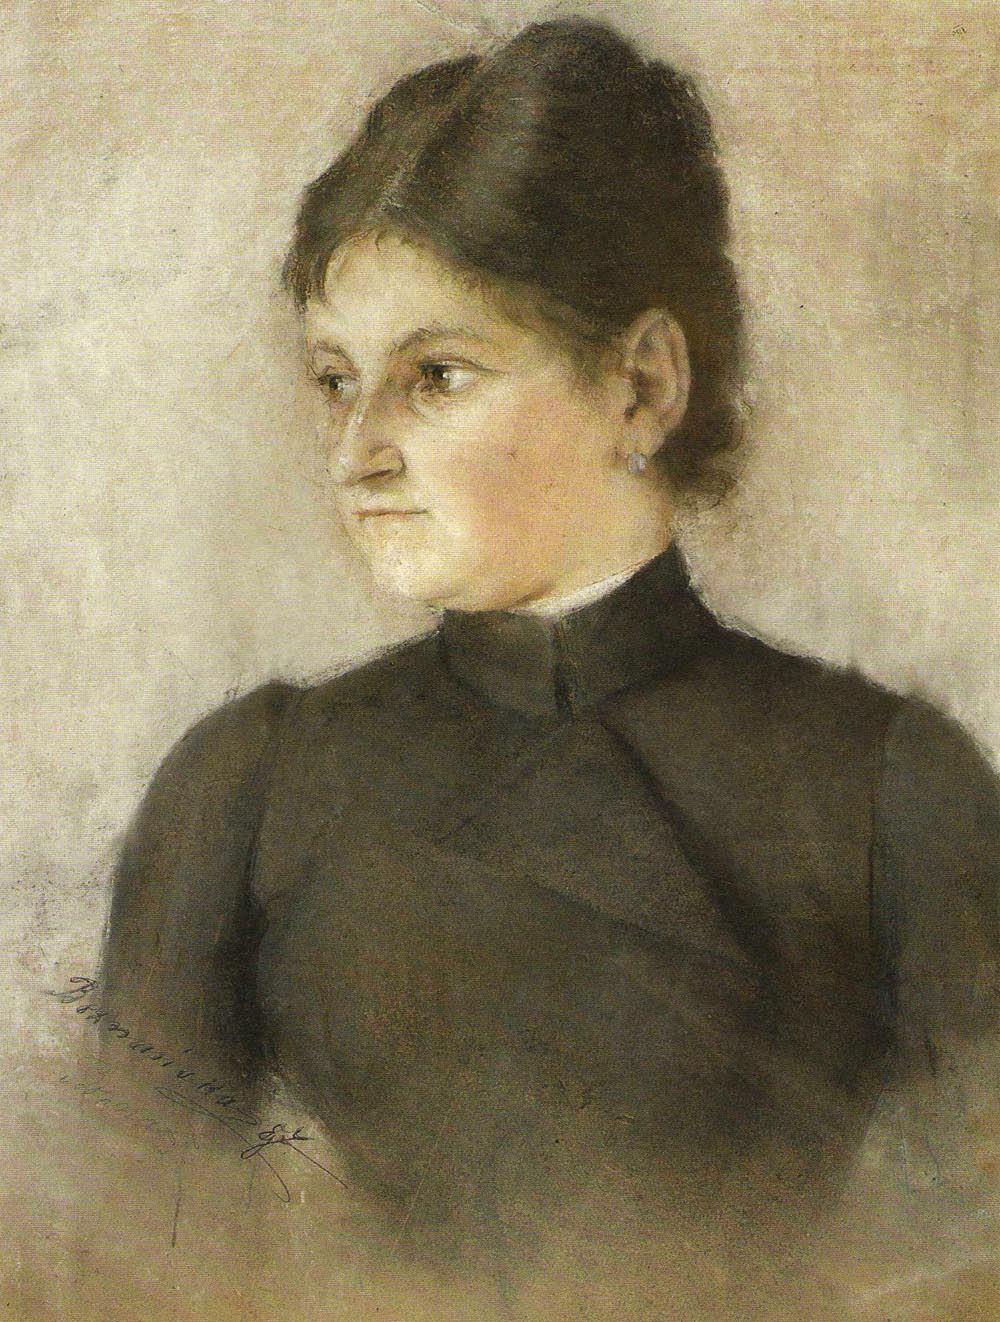 Portrait of Iza Boznanska, the Artist's Sister